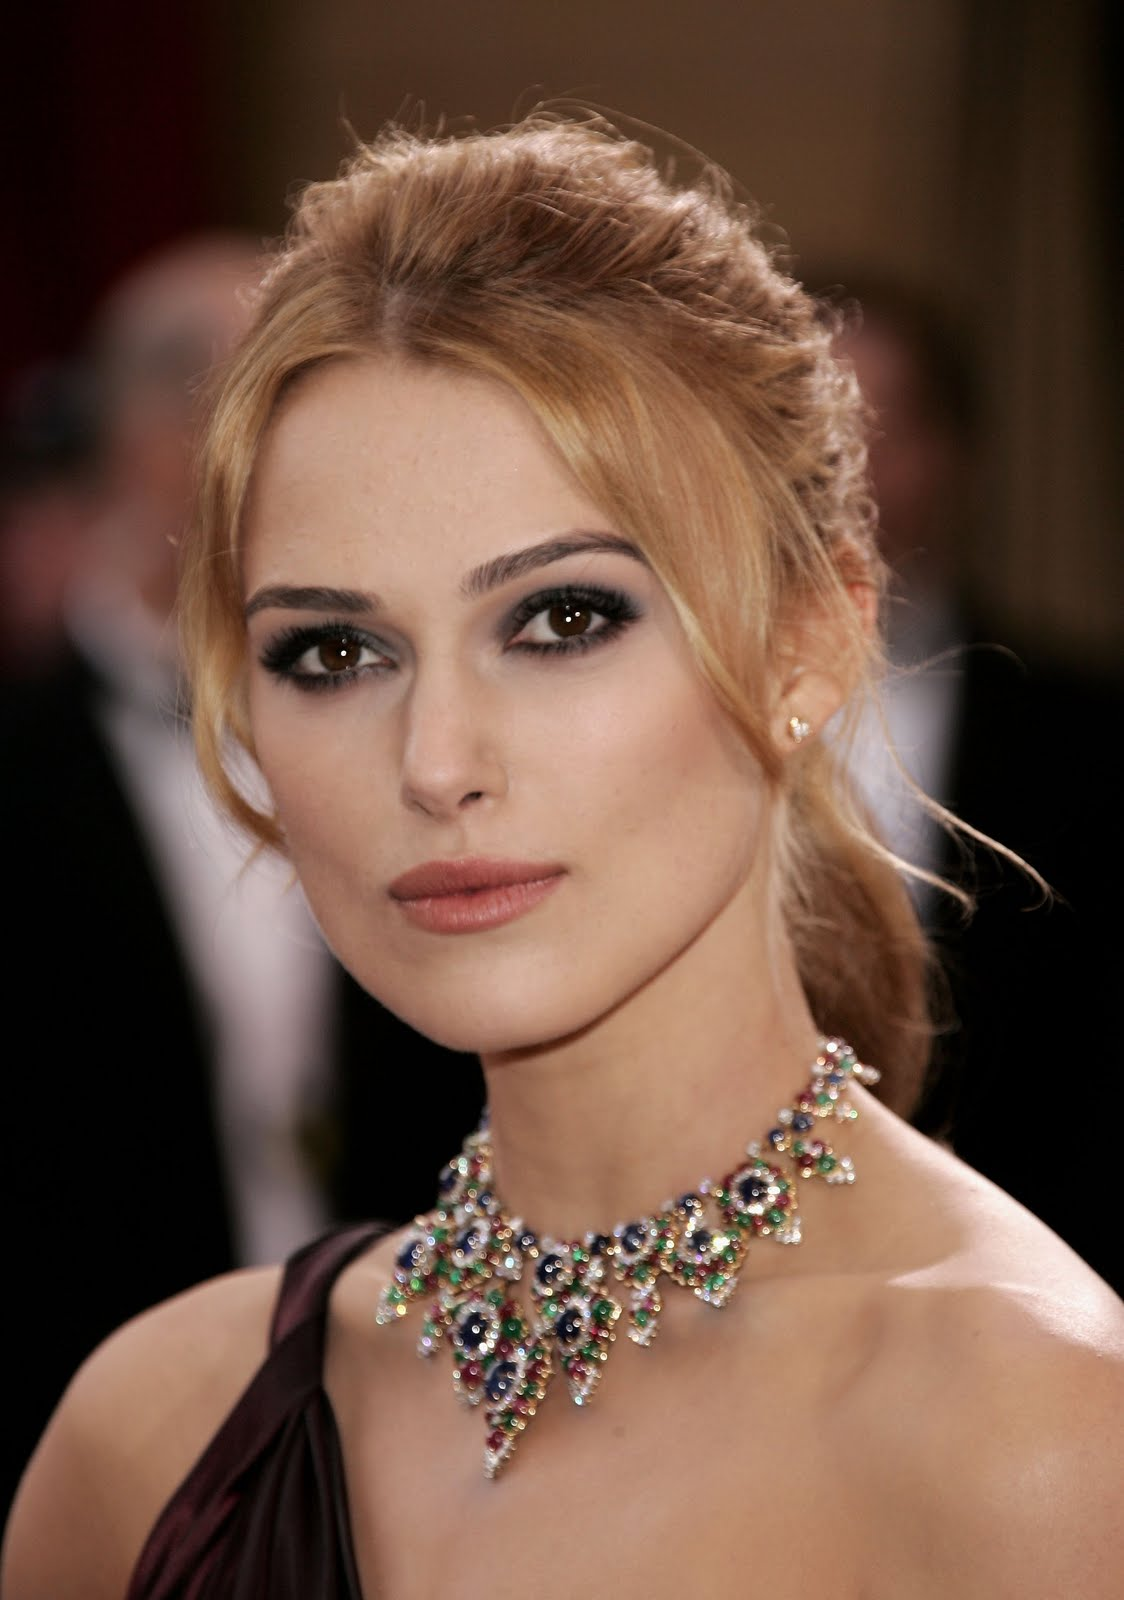 Celebrity Mansion: Keira Knightley New Picteres